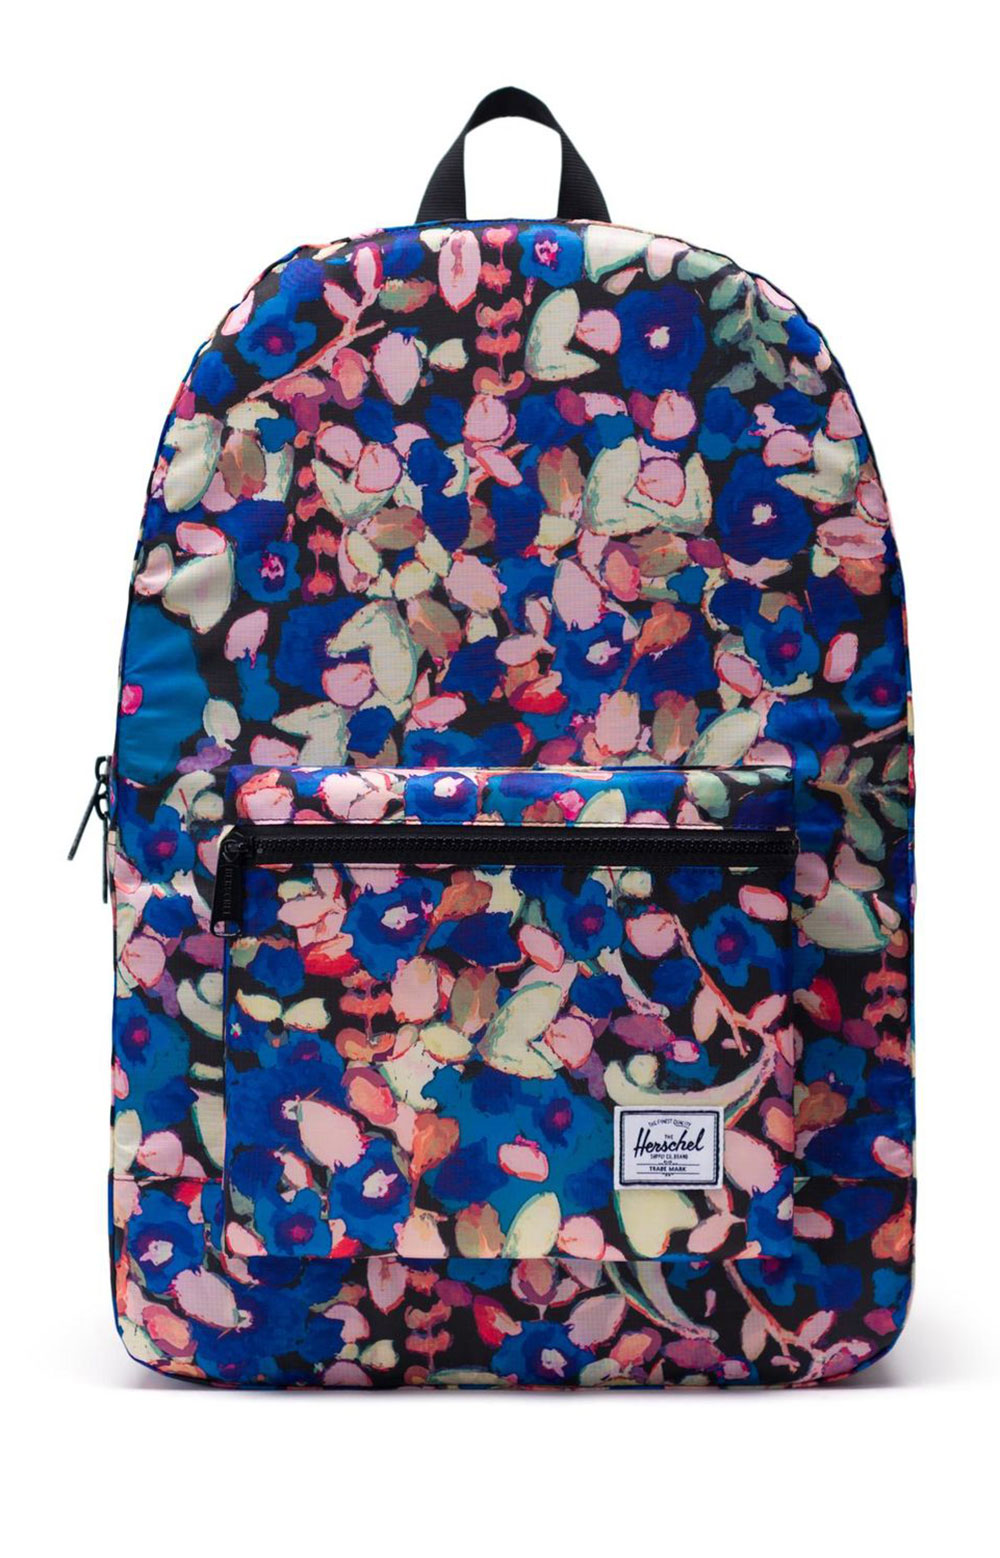 Packable Daypack - Painted Floral